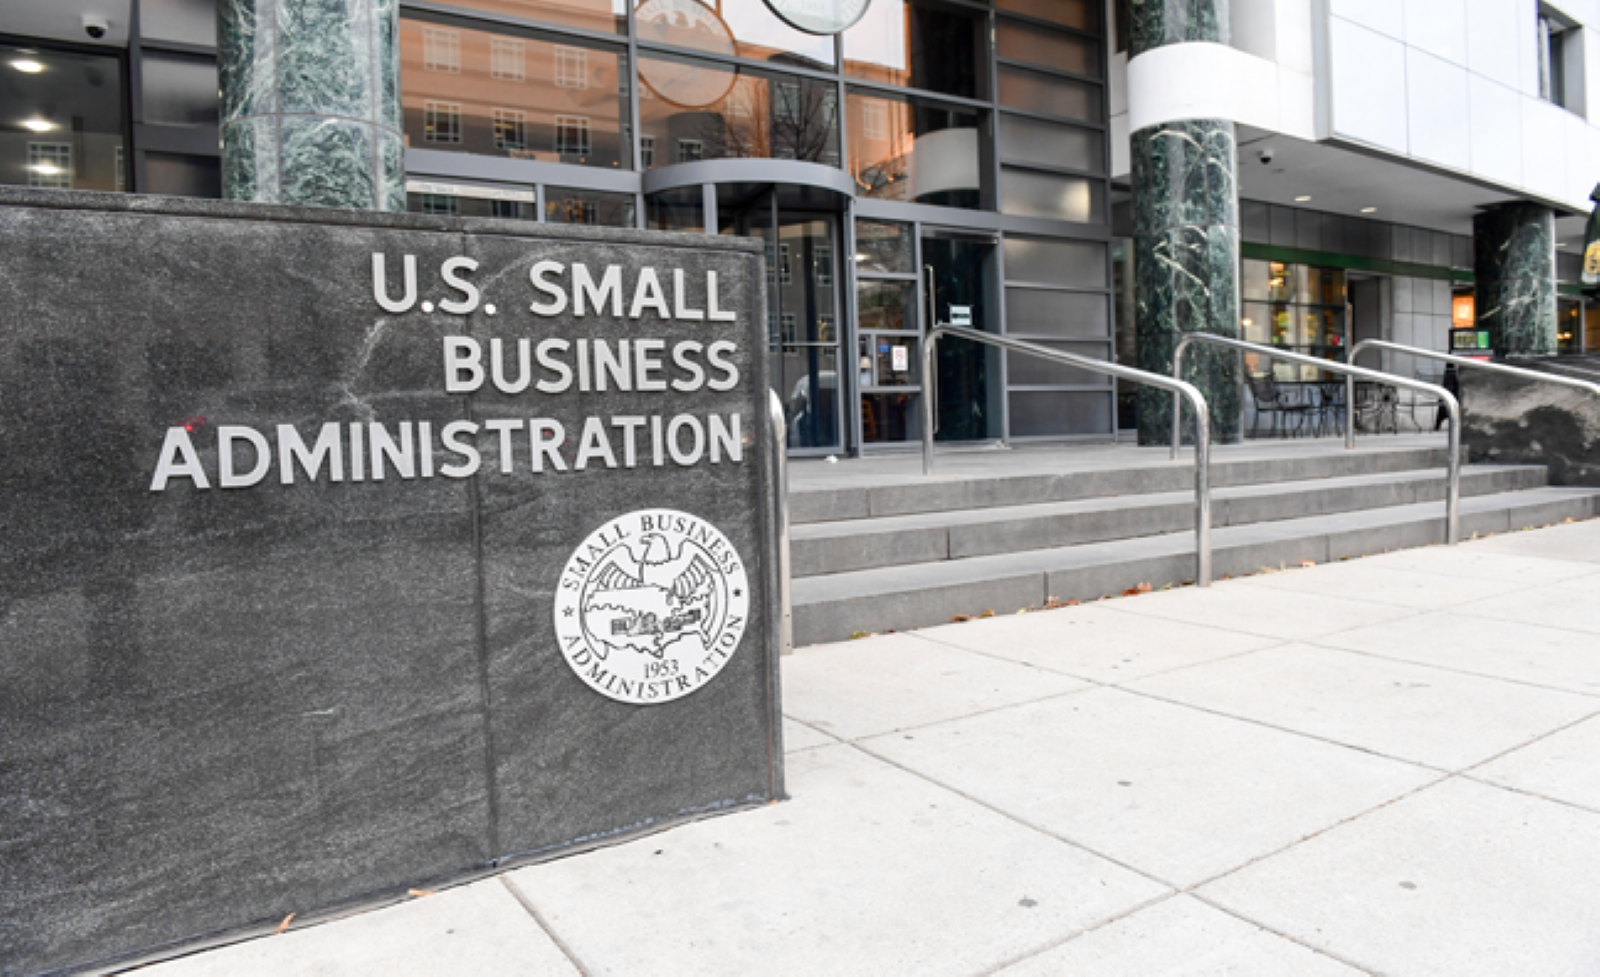 Small Business Administration headquarters